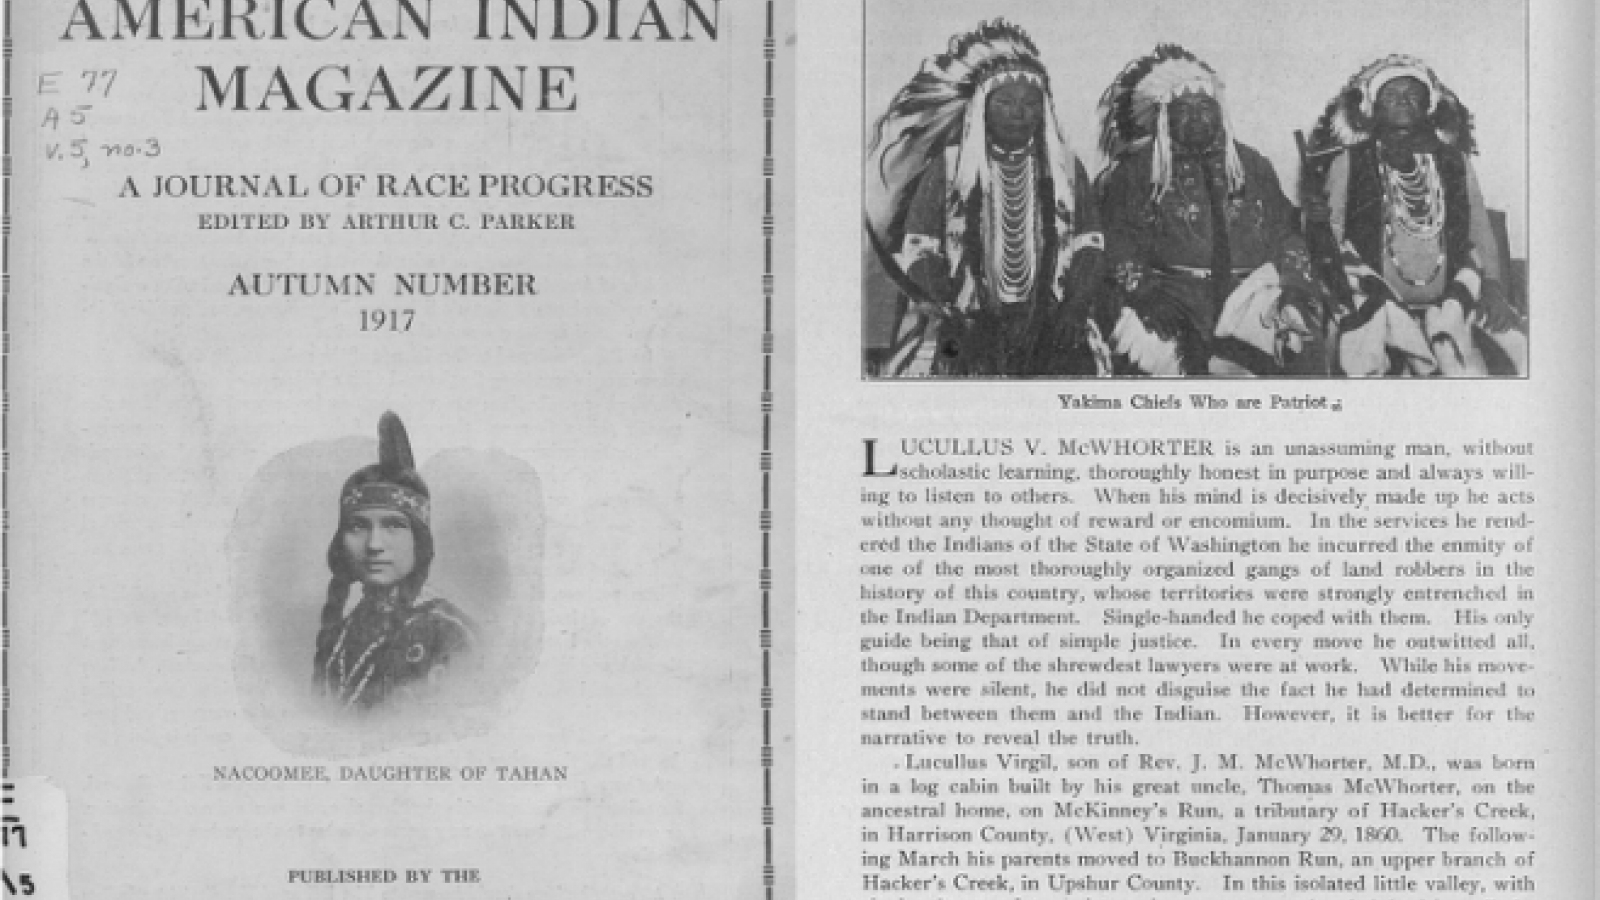 Quarterly Journal of the Society of American Indians, Image 12